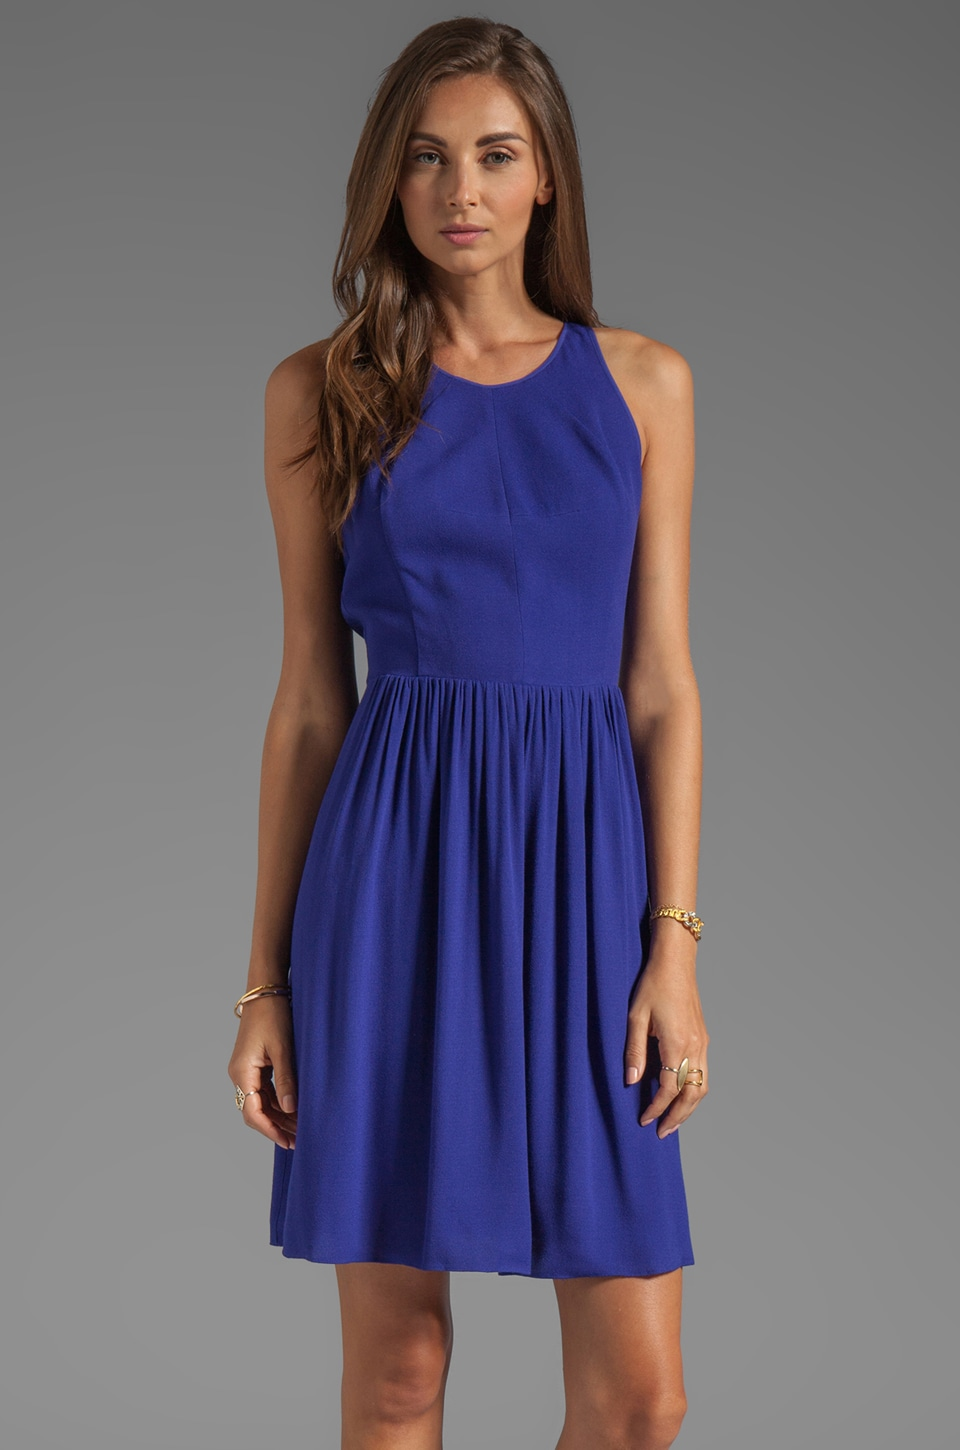 Rebecca Taylor Demi Femme Dress in Purple